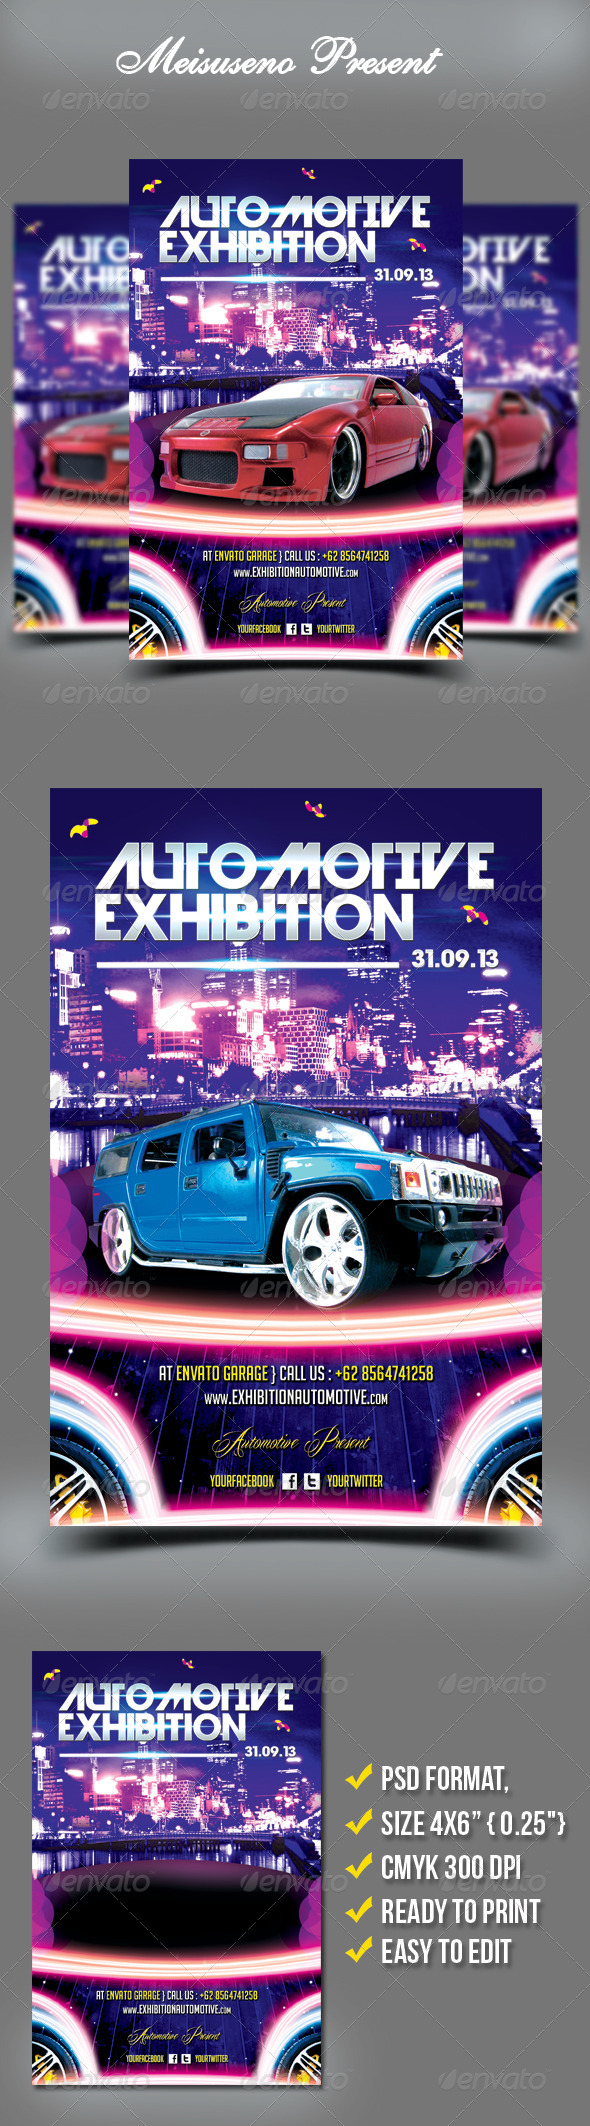 GraphicRiver Automotive Exhibition Flyer Template 5411327